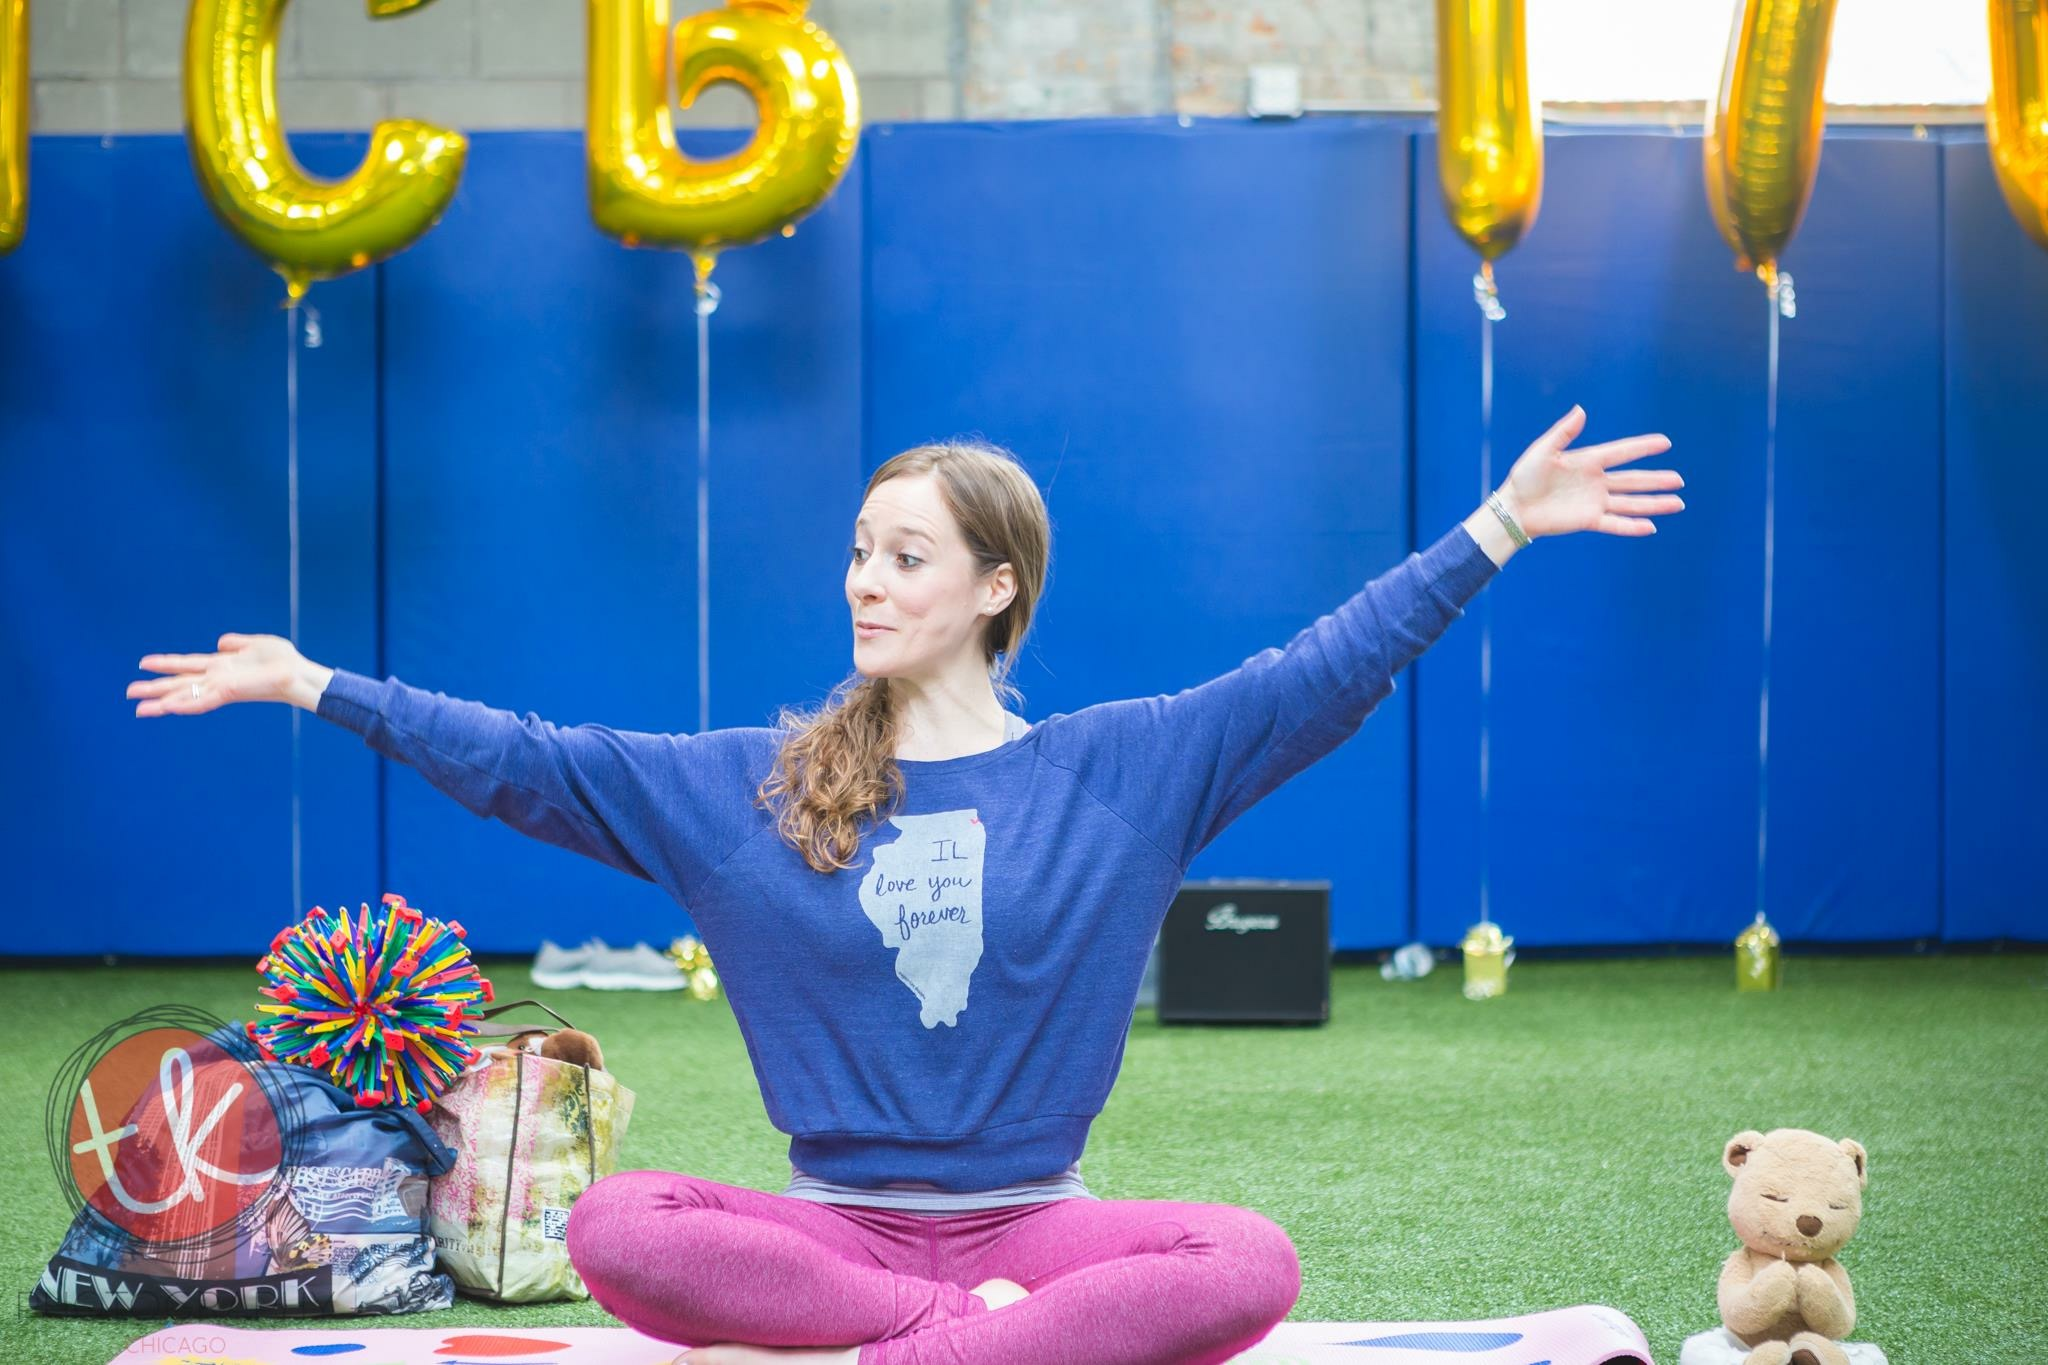 Erin Bracco - Erin Bracco is the co-founder of Buddha Belly Kids Yoga and is excited to spread her love of yoga to her favorite people in the world: children. For seven years, she was a classroom teacher and holds a Bachelor of Science Degree in both Elementary Education and Special Education from Vanderbilt University. Her passion for child development is evident in both her teaching and yoga practice as she fosters newfound confidence and body awareness through the unique Buddha Belly curriculum. Erin thrives on helping little beings explore their world by giving them new tools to make sense of their surroundings. She believes there is no better medium than yoga to harness the positive, contagious energy of children. Erin is a Registered Children's Yoga Teacher through Yoga Alliance. She has completed her 200hr teacher training at Zen Yoga Garage in Chicago, 95 hour kids teacher training through Rainbow Kids Yoga, and holds a certificate in partner yoga through Rainbow Partner Yoga. Additionally, she successfully completed the Mindful Fundamentals and Mindful Educator Essentials certifications through Mindful Schools.